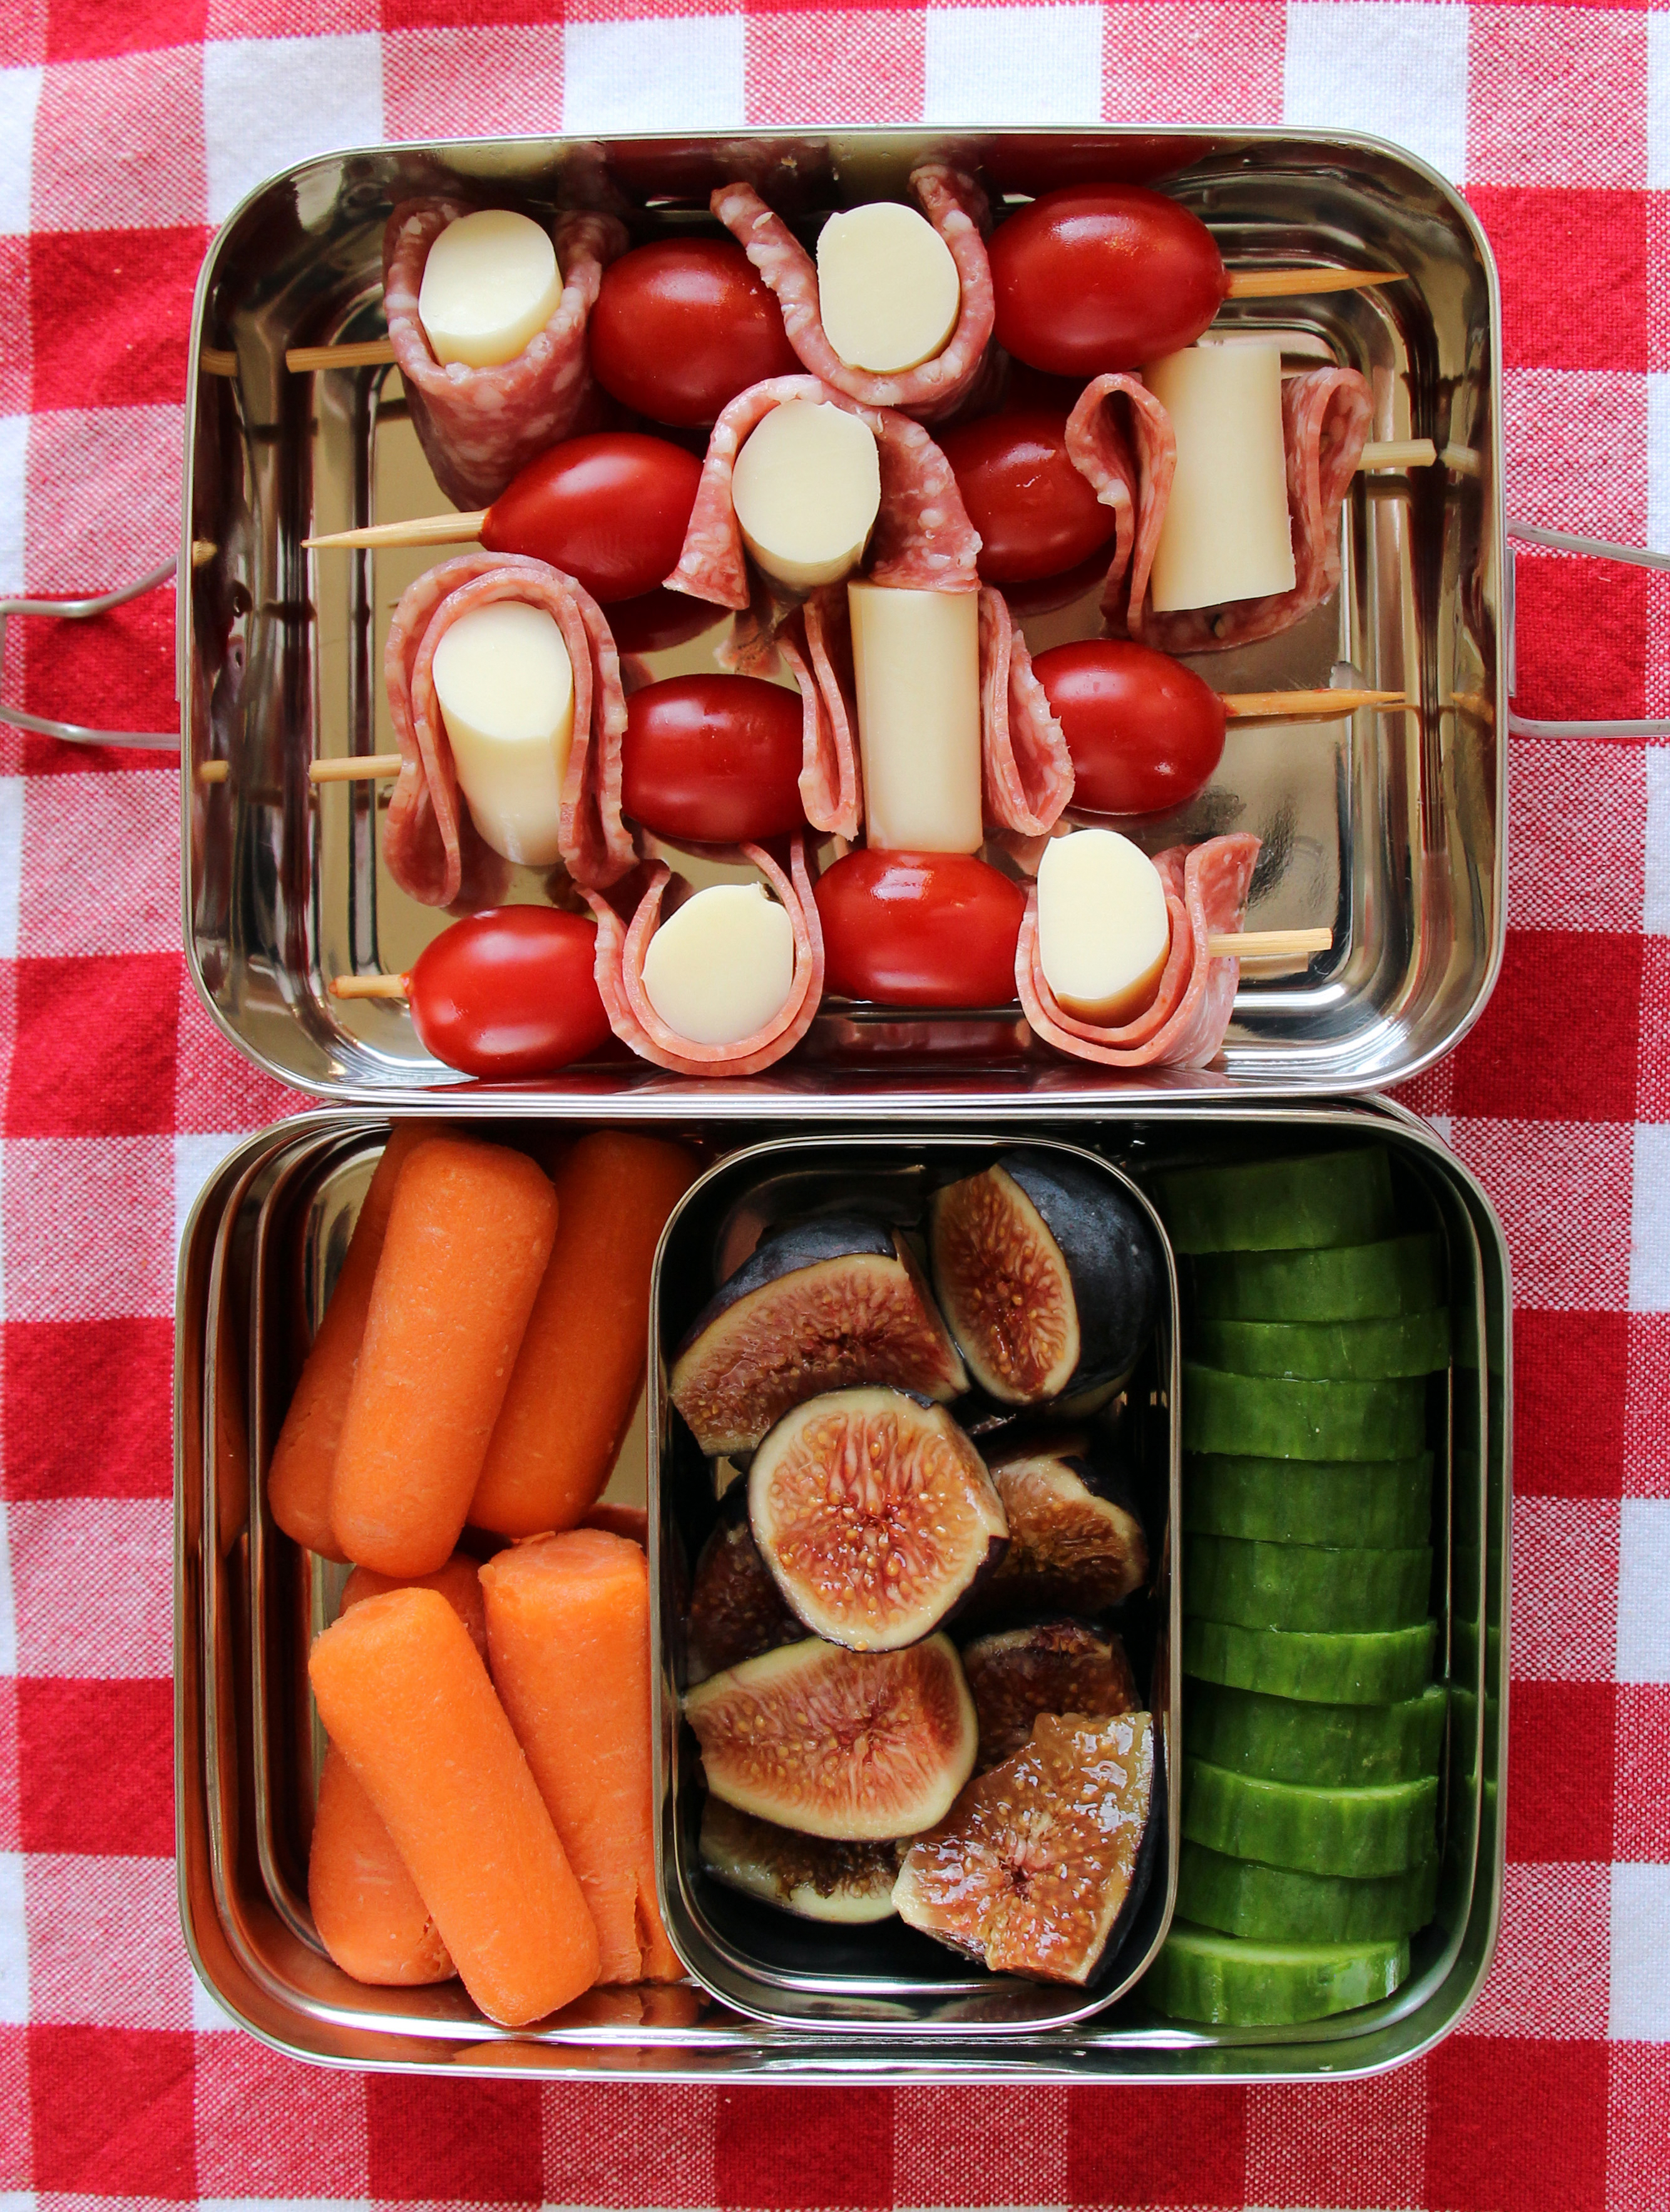 bento box pizza skewers figs cucumbers carrots